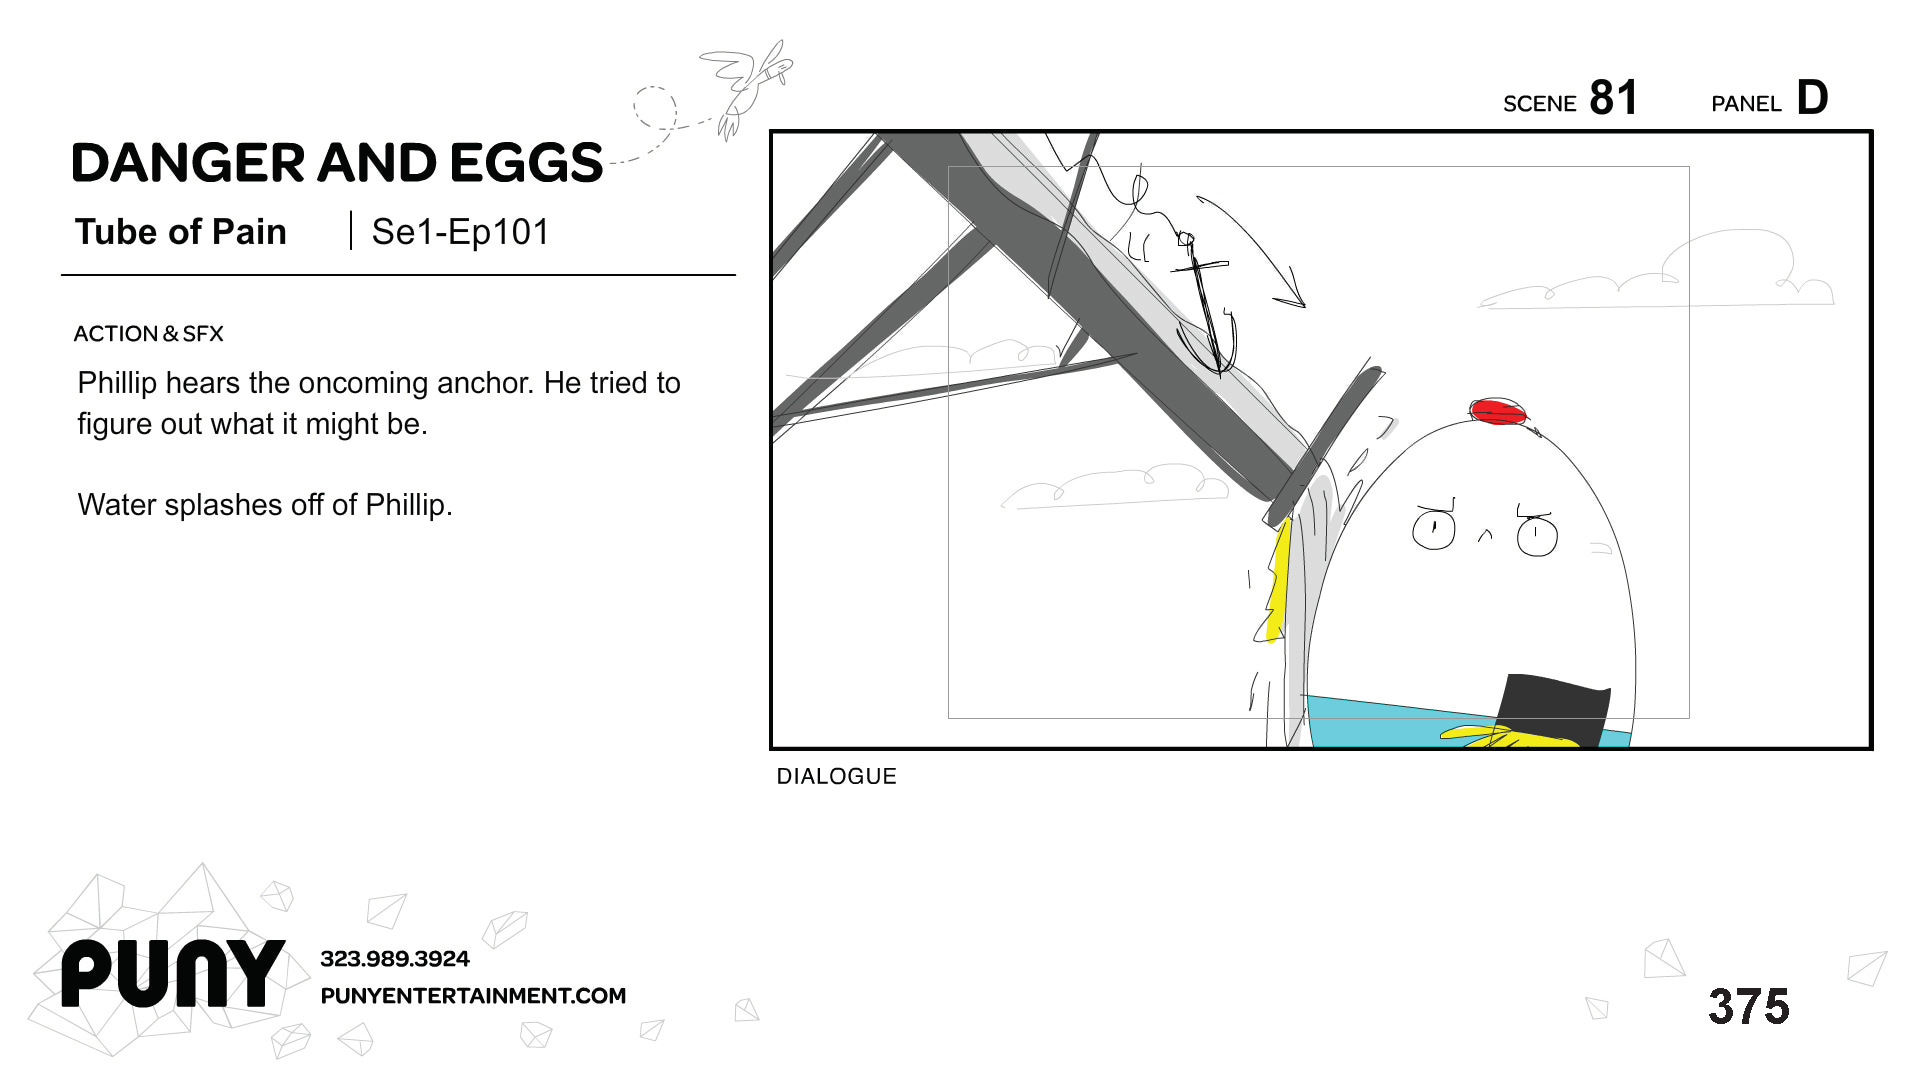 MikeOwens_STORYBOARDS_DangerAndEggs_Page_270.png